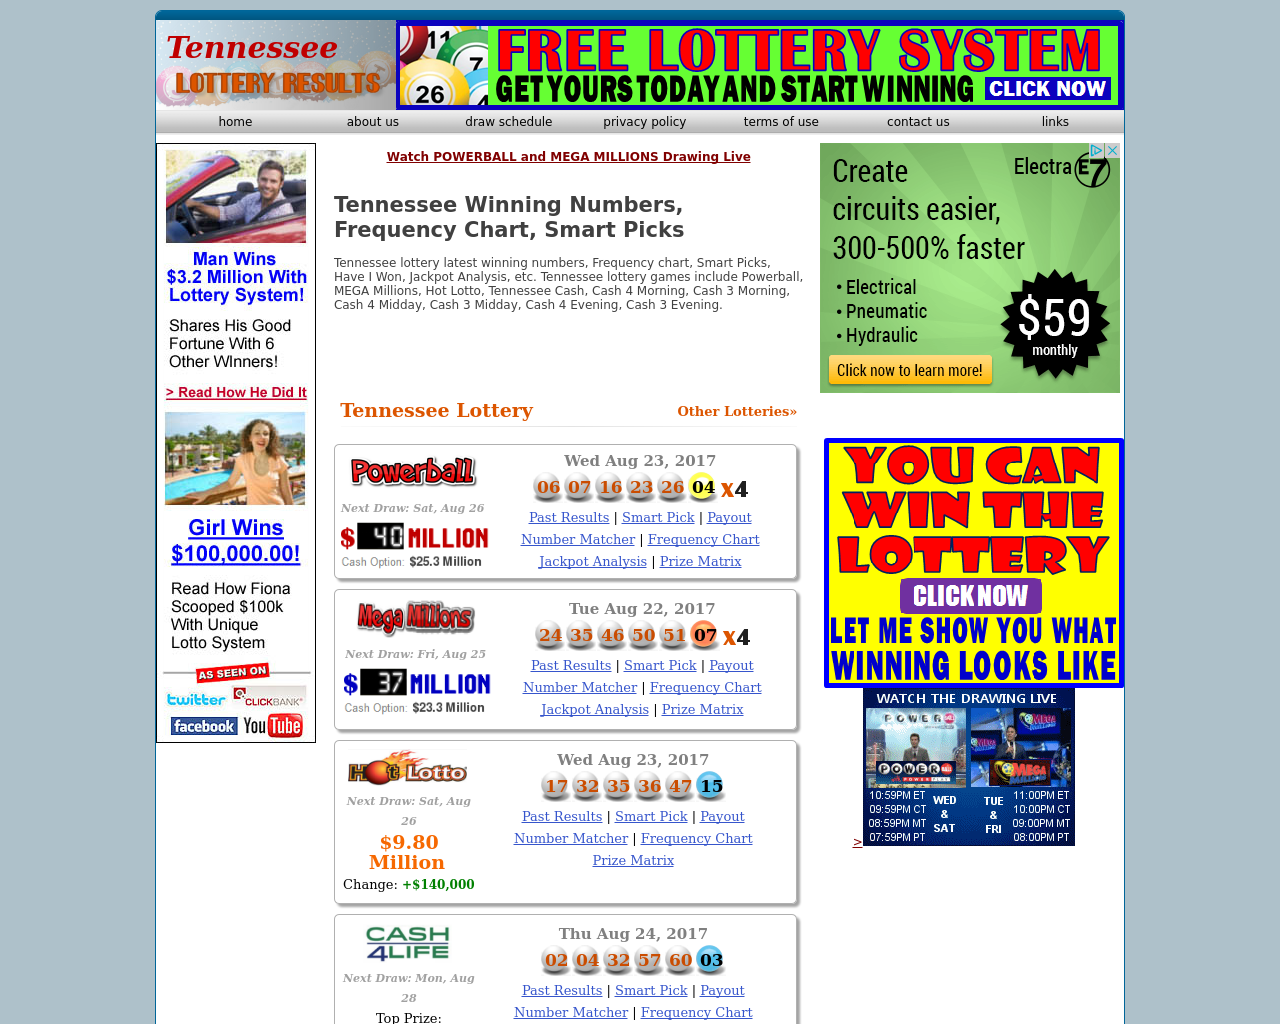 Tennessee-Lottery-Live-Advertising-Reviews-Pricing